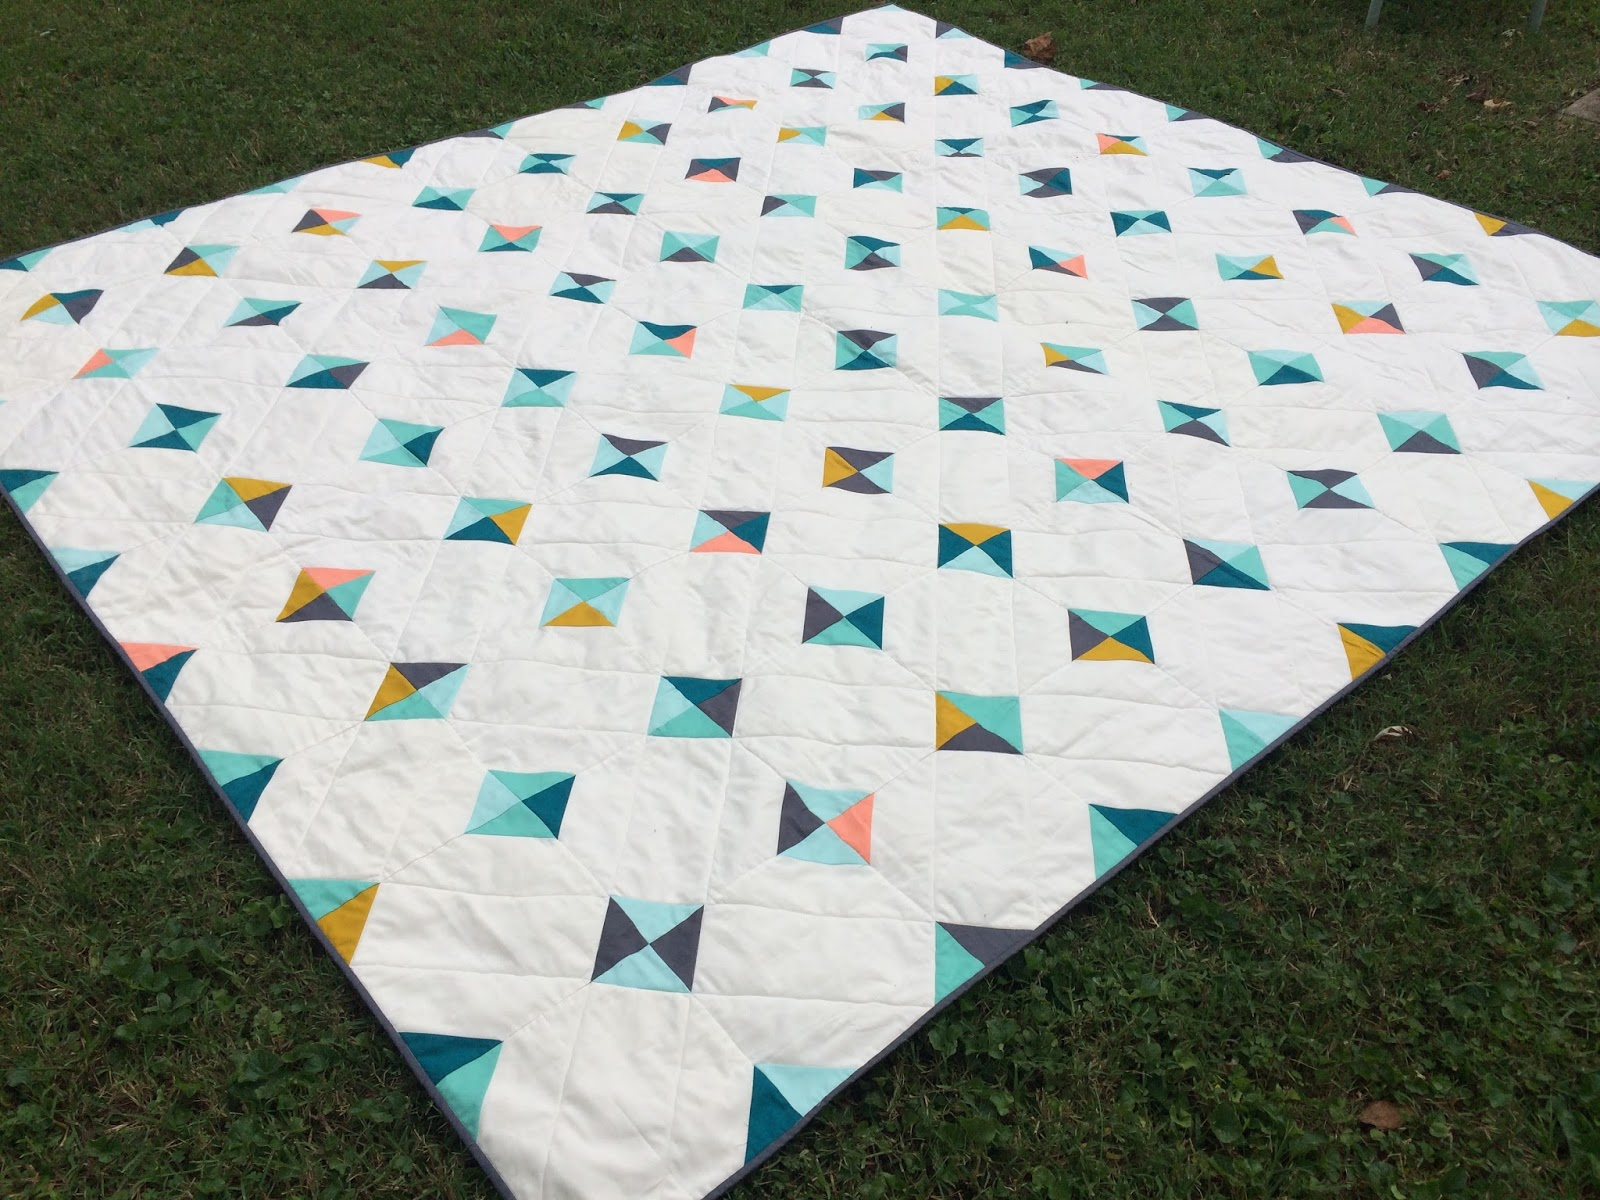 becalmedsewing: (Bigger) Tiny Tile Quilt for a wedding gift (a ... : tile quilt - Adamdwight.com